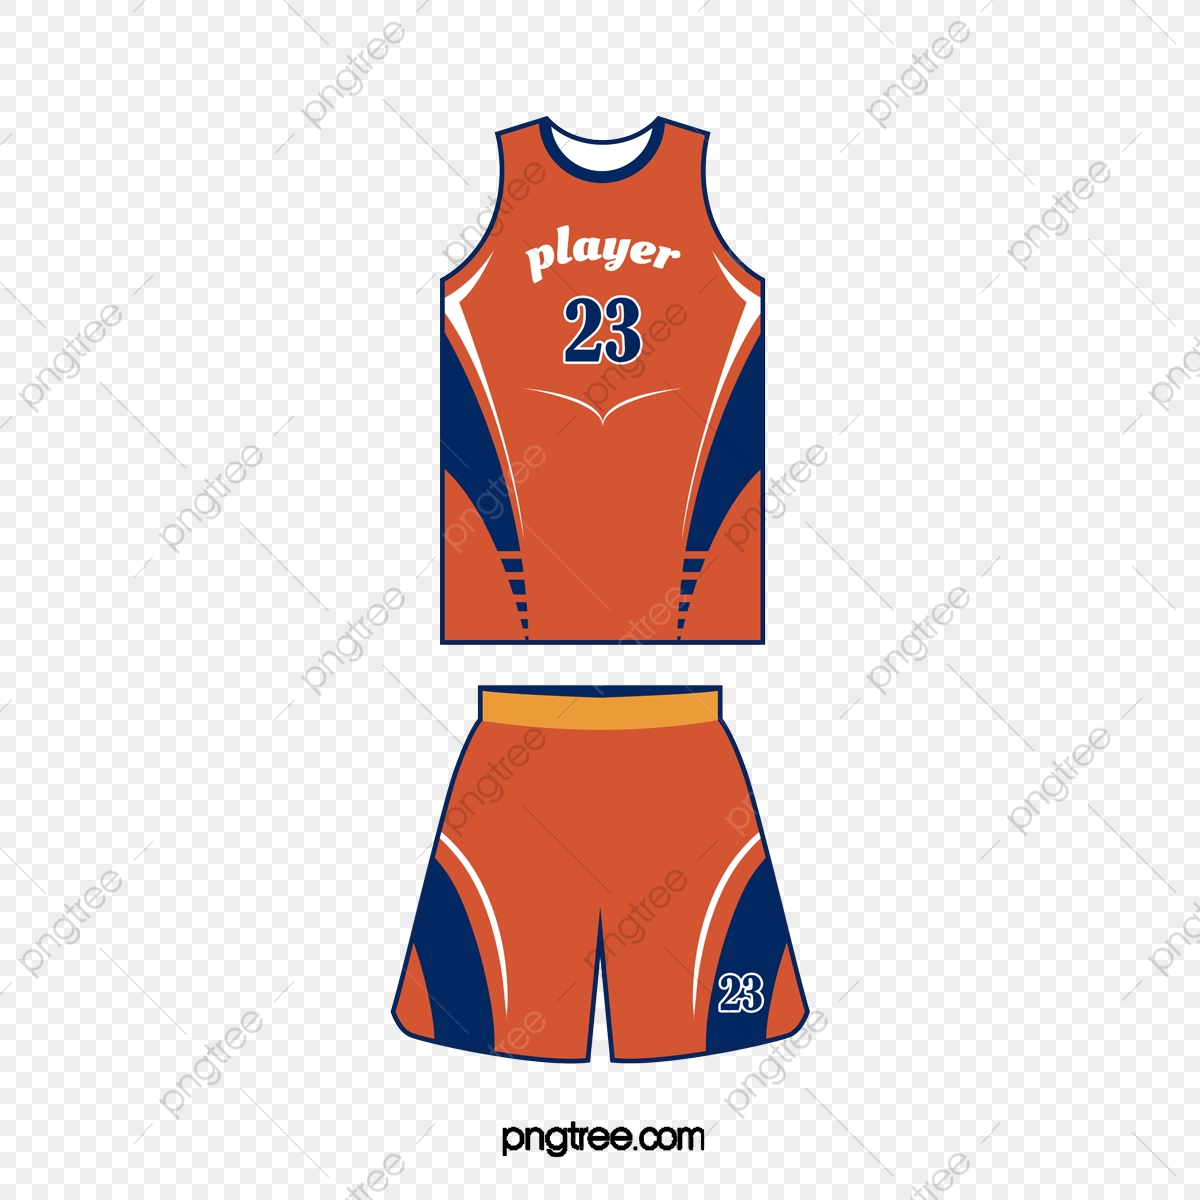 Clothes clipart basketball. Cartoon orange number